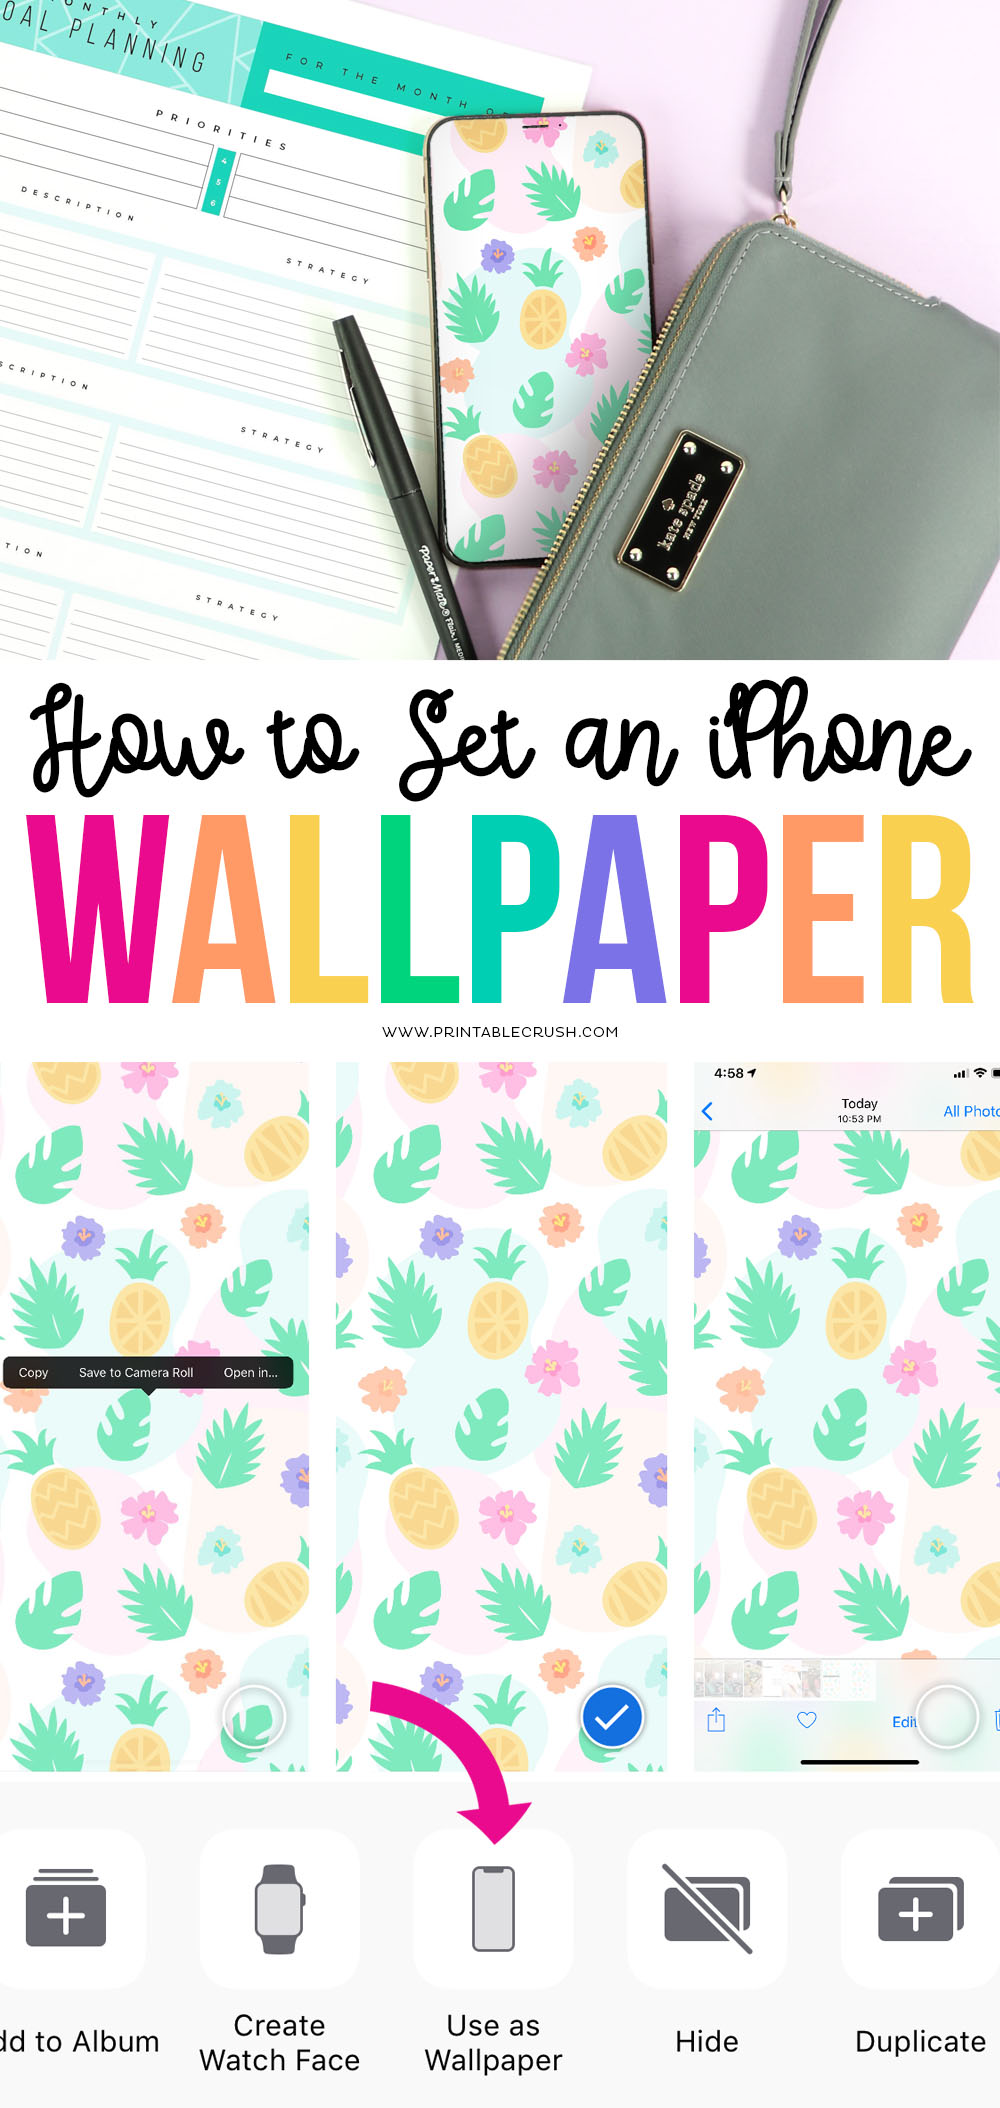 Check out this quick tutorial on How to change your iPhone Wallpaper to any image you want!